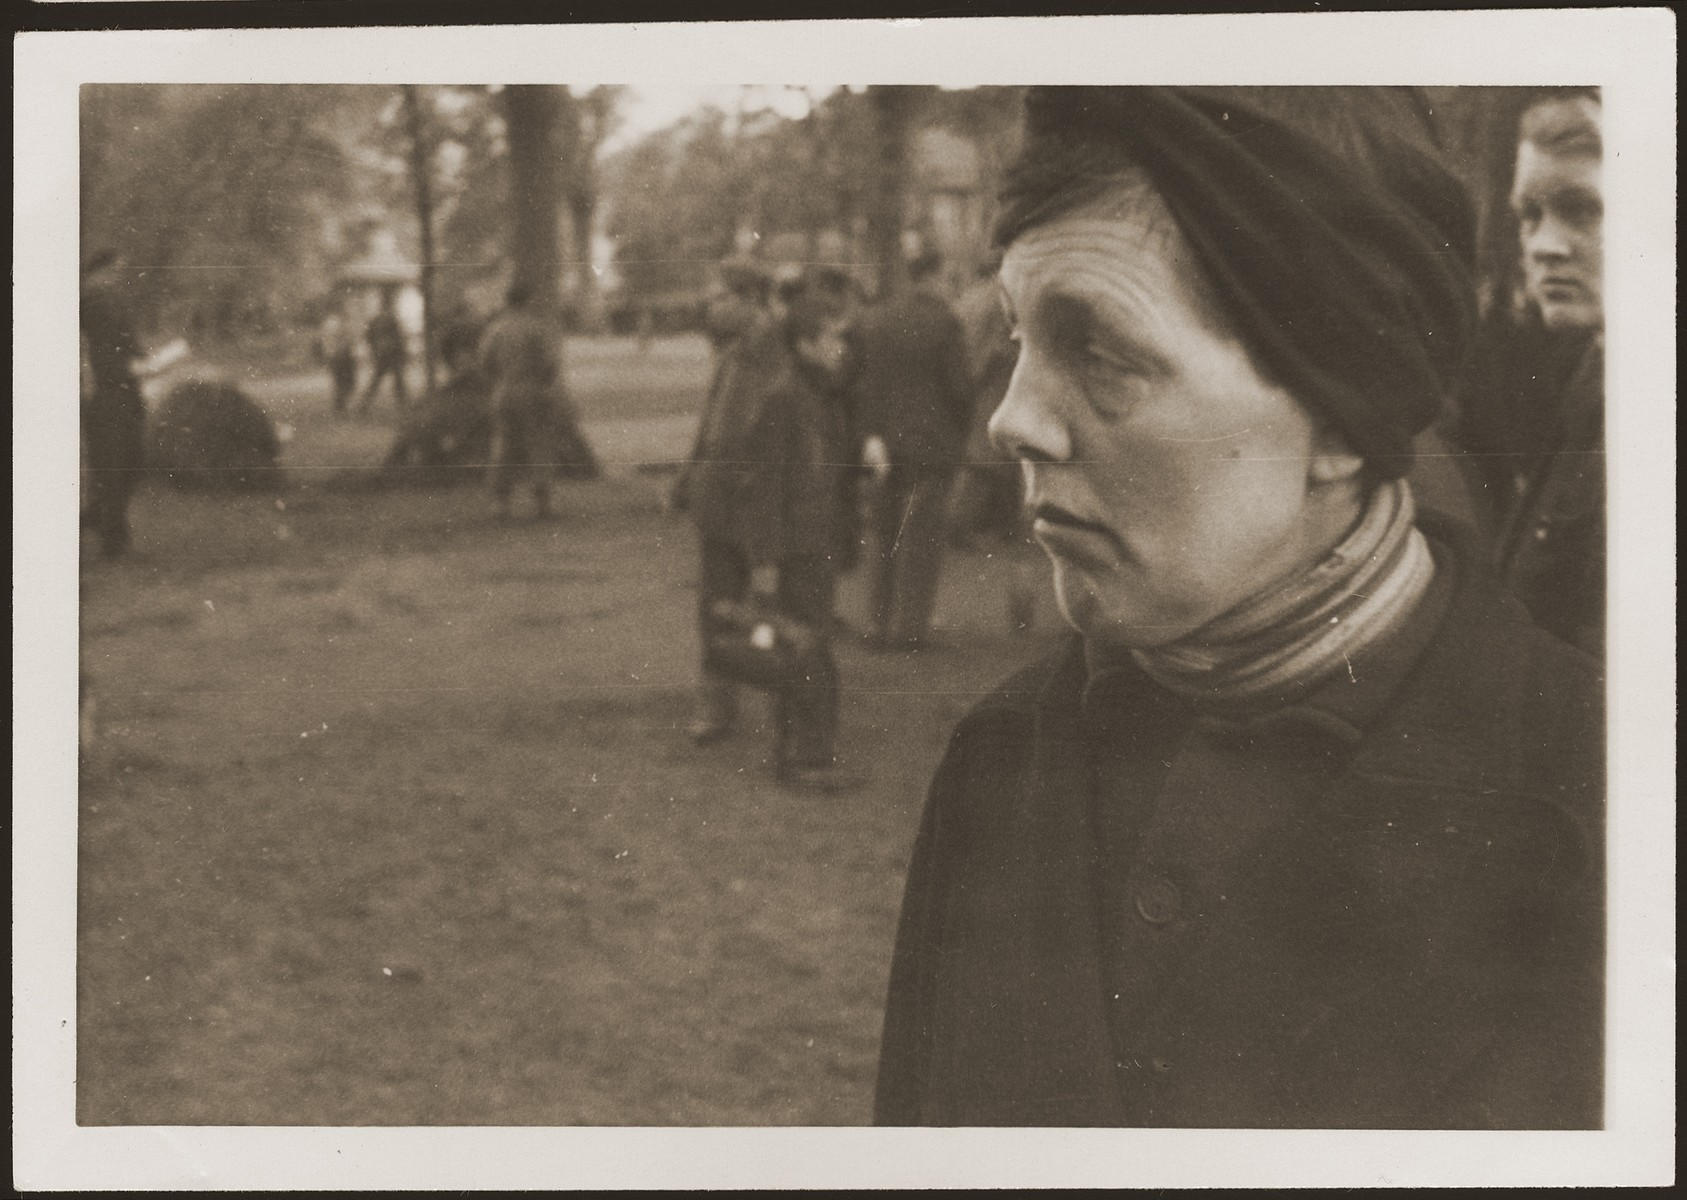 A German woman from Ludwigslust on the palace grounds of the Archduke of Mecklenburg, where they have been forced by U.S. troops to bury the bodies of prisoners killed in the Woebbelin concentration camp.